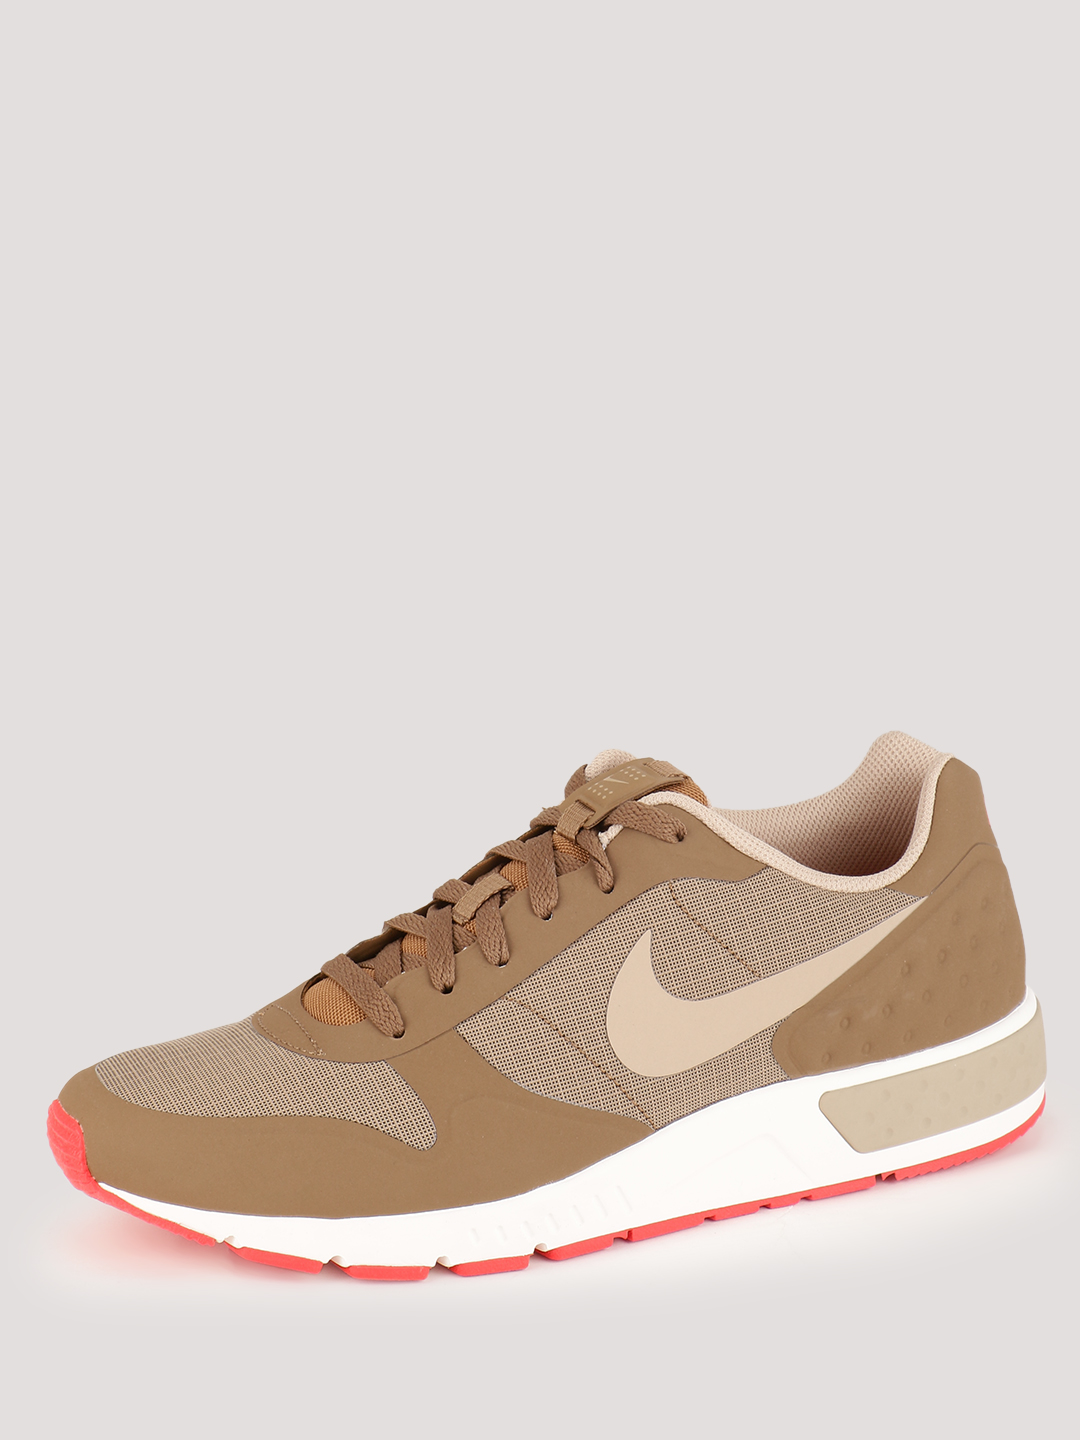 Nike Golden Beige/Orange-Sail Nightgazer Trainers 1